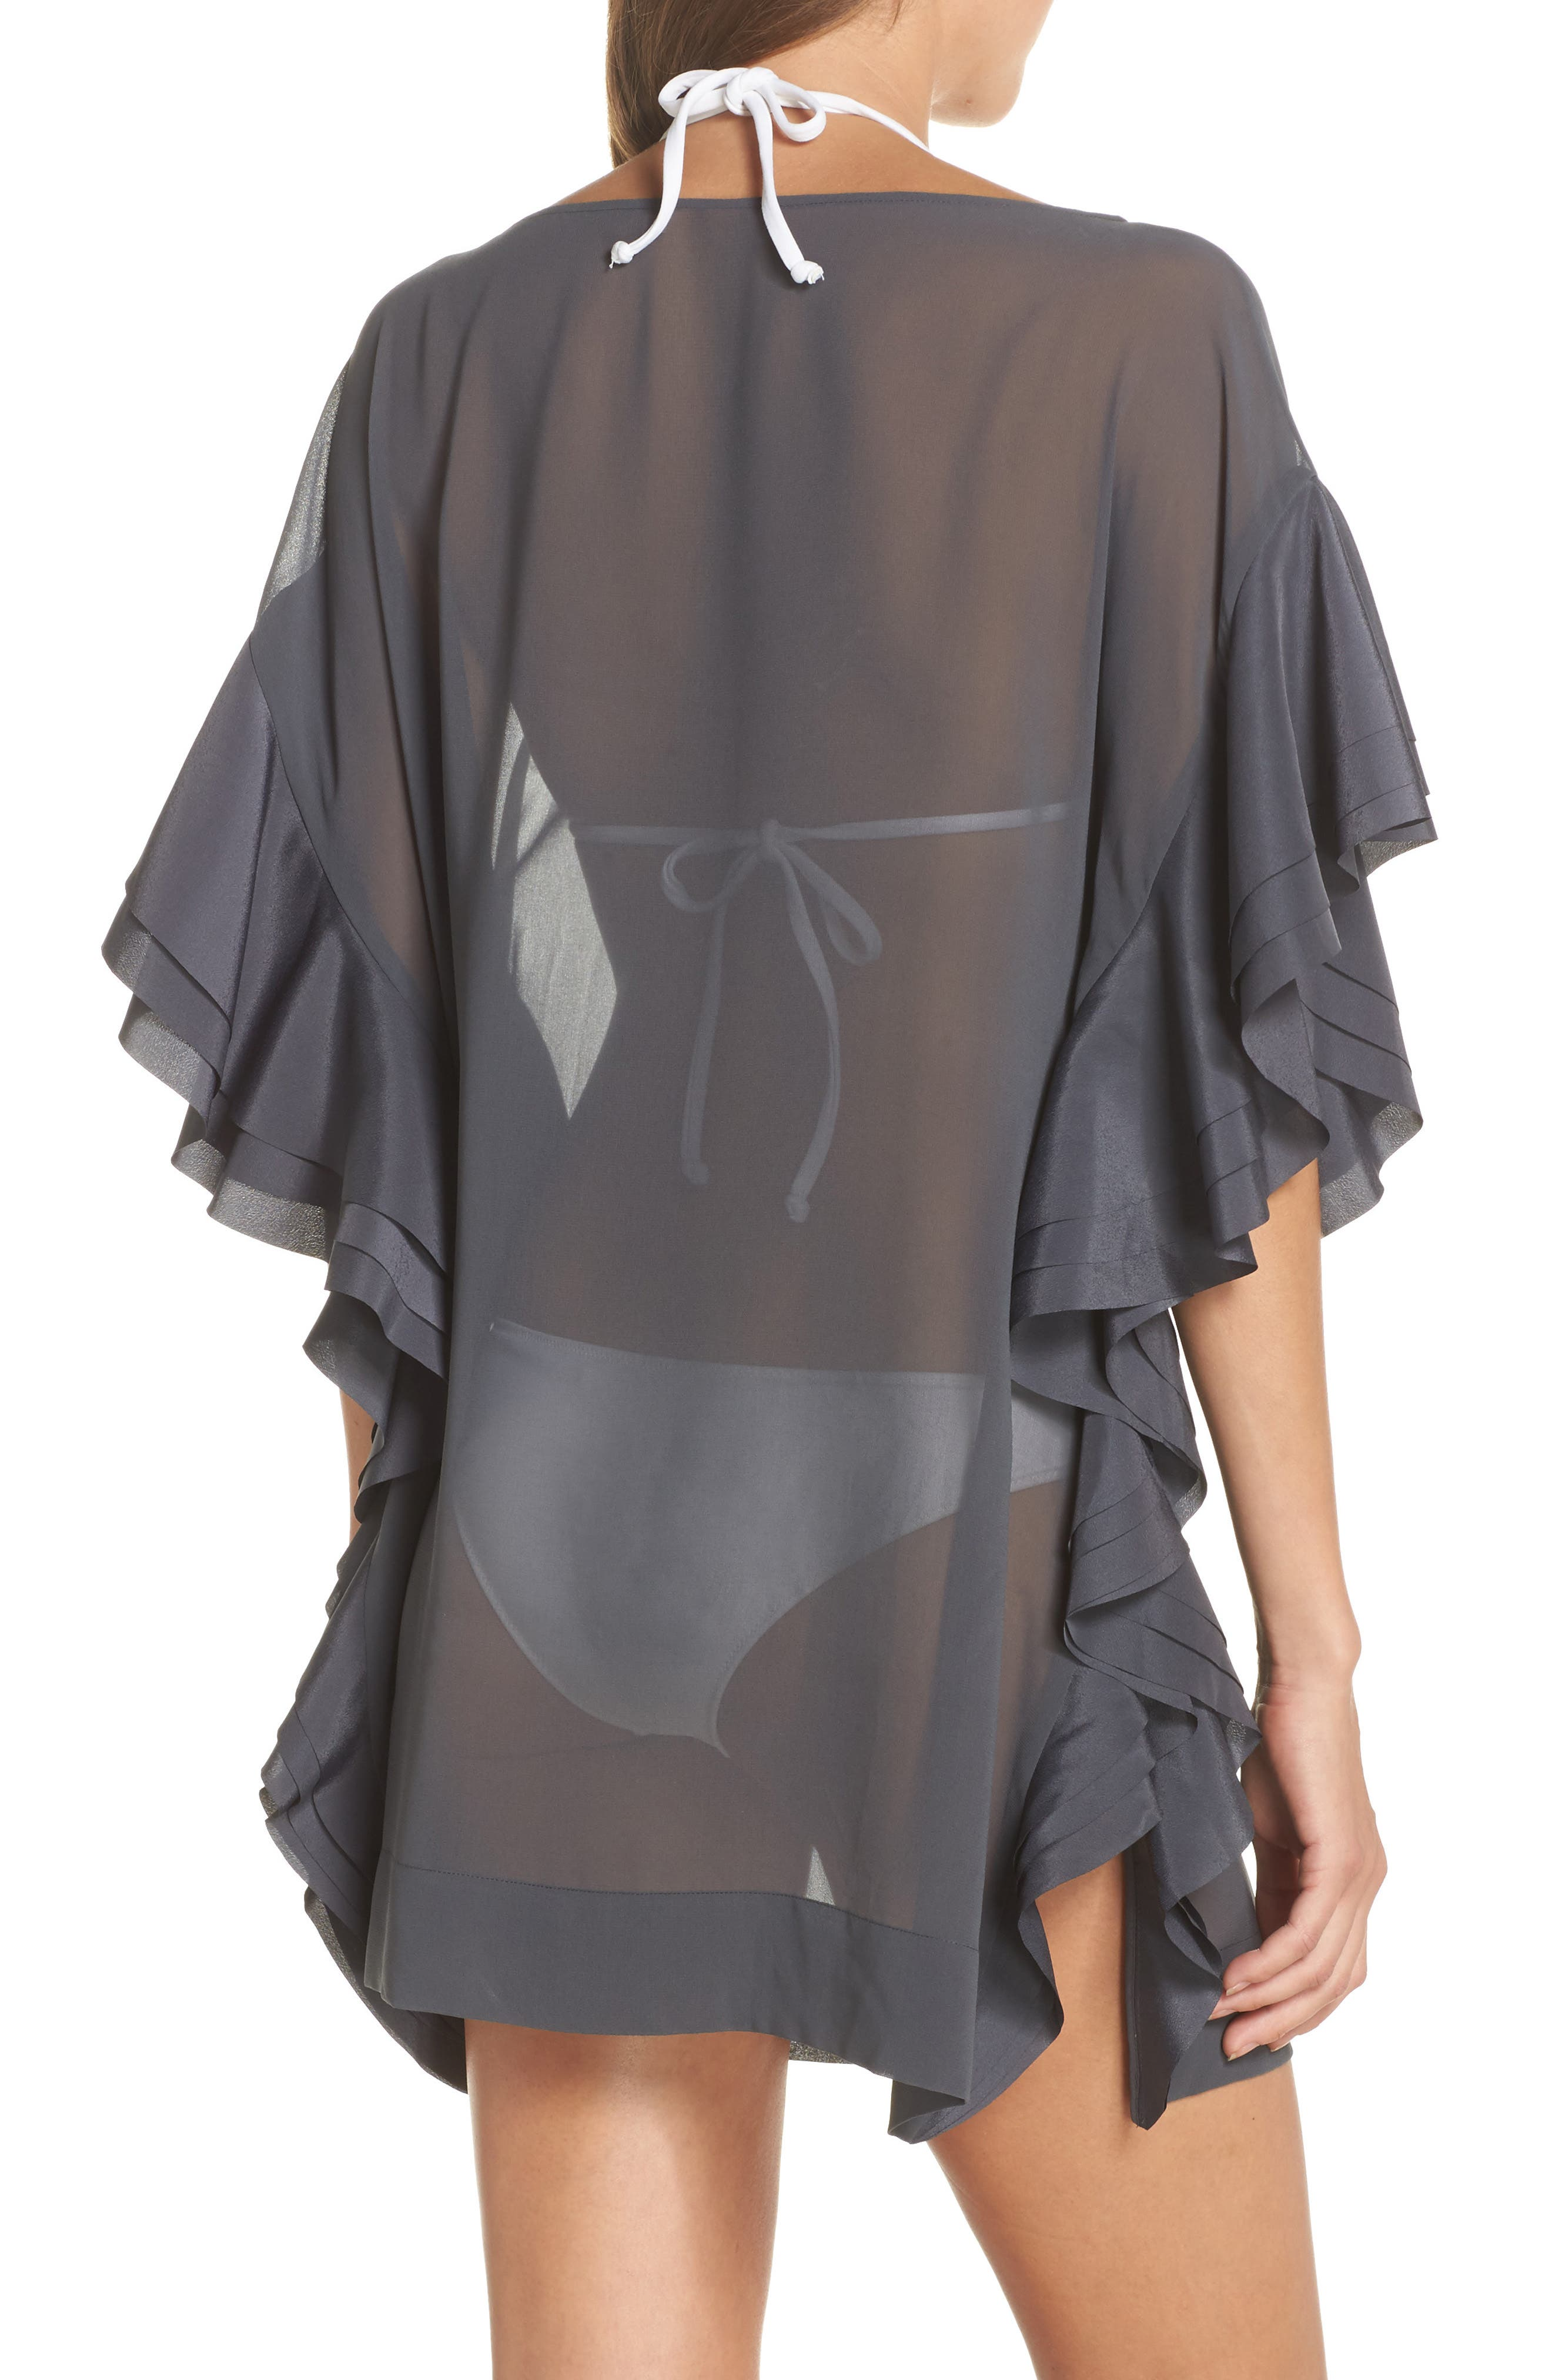 Ruffle Square Cover-Up Dress,                             Alternate thumbnail 2, color,                             Grey